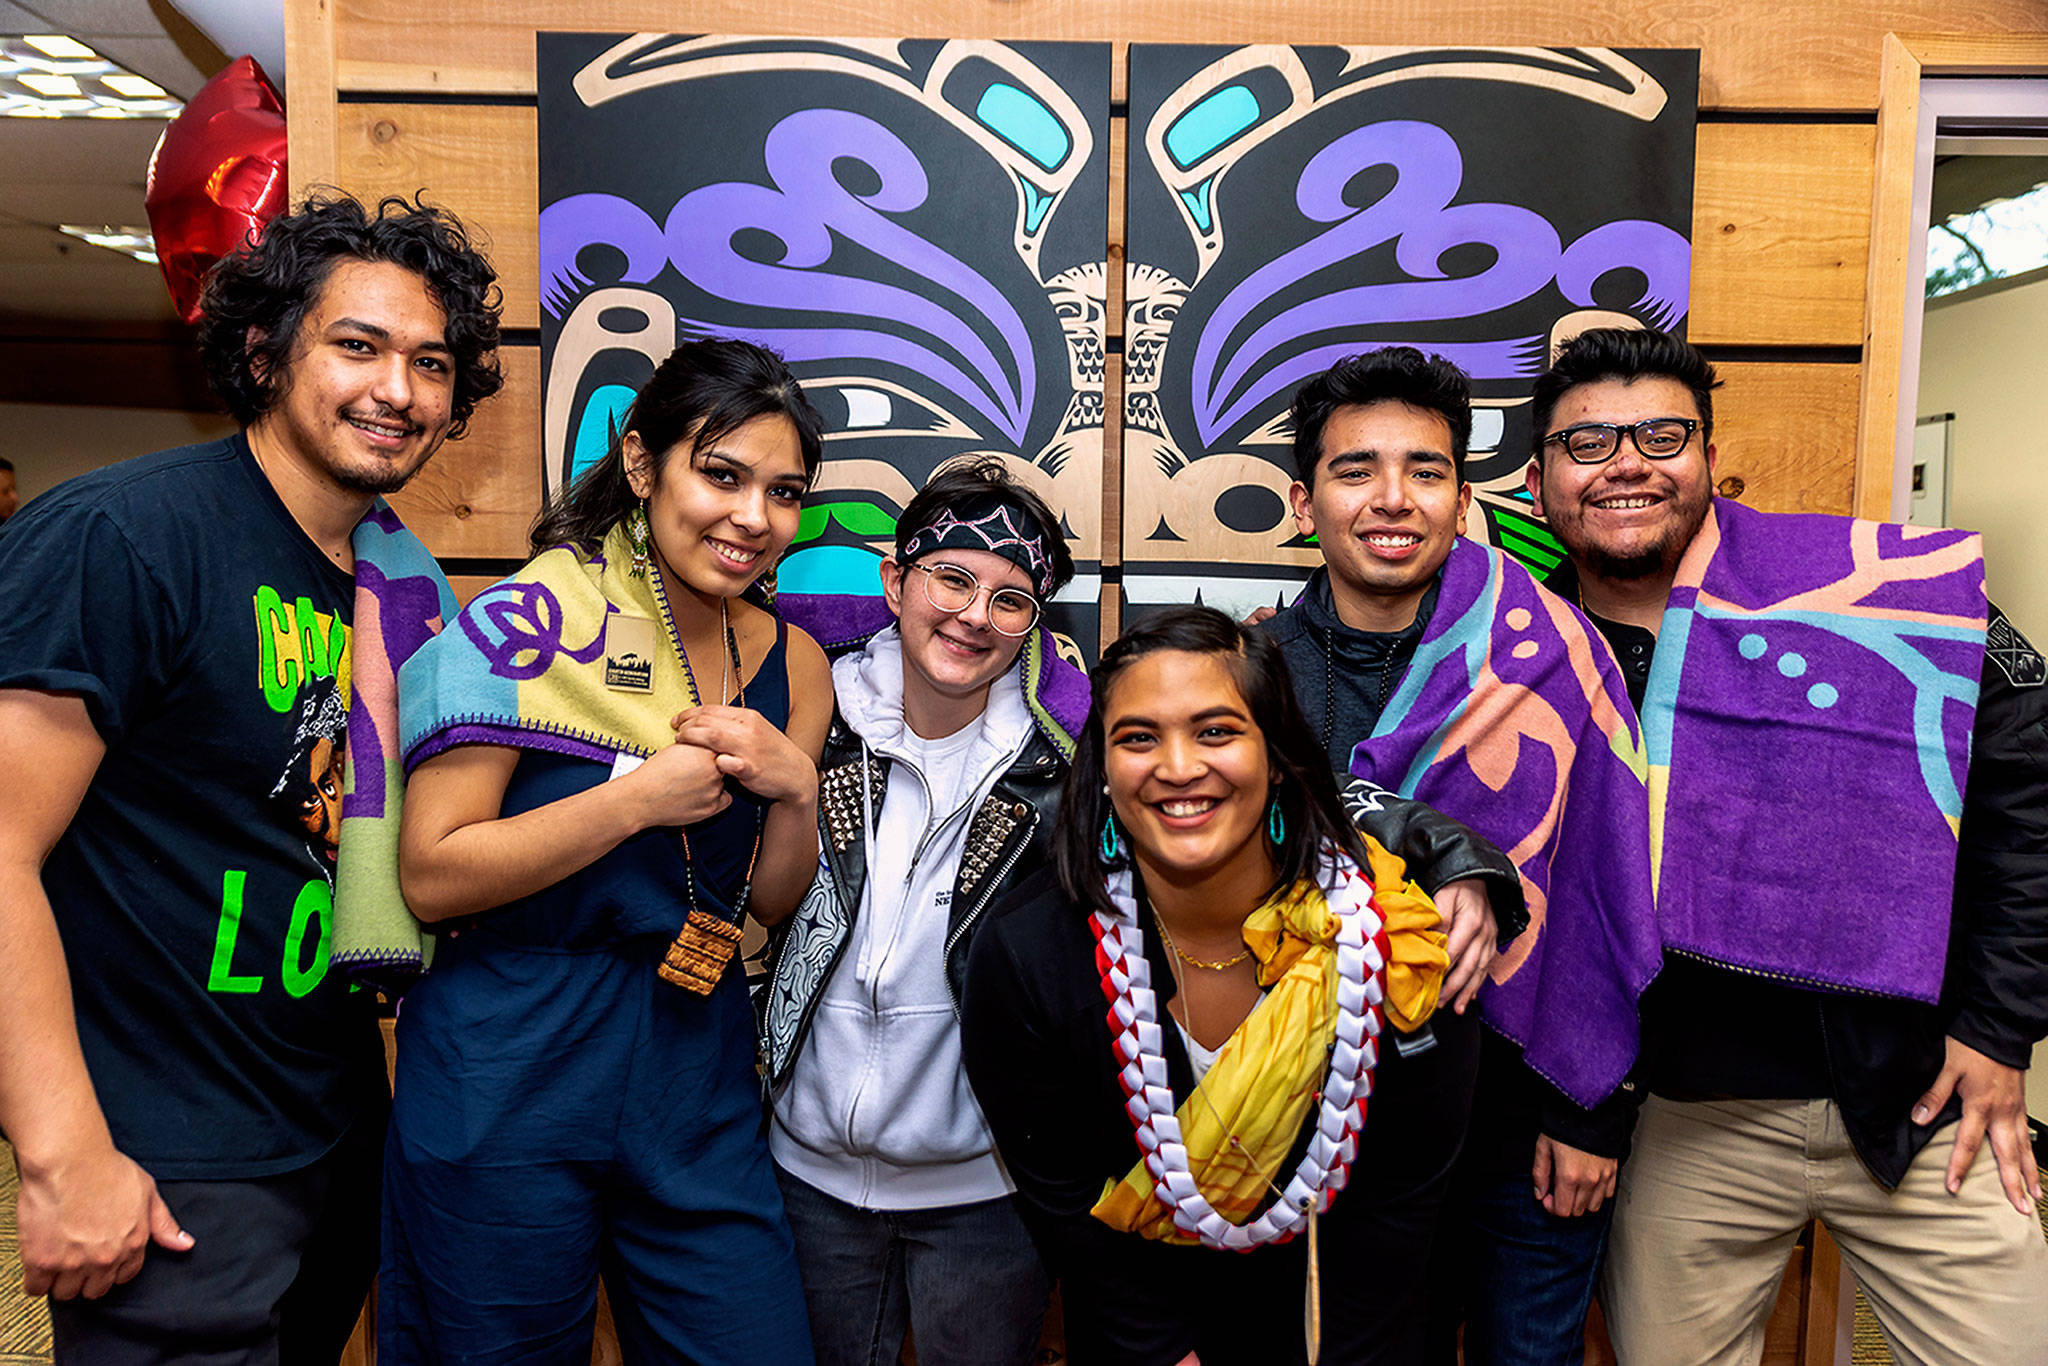 With Emma Ka'aha'aina (fourth from left in lei), program manager of EvCC's Diversity & Equity Center, are members of the college's First Nations Club who proposed a space for Native American, Indigenous and Pacific Islander students. They are, from left, Cullen Zackuse, Kayah George, Tara Duffin, Sebastian Corrales and Rafael Alverez. (Photo by Derek Walker, EvCC)